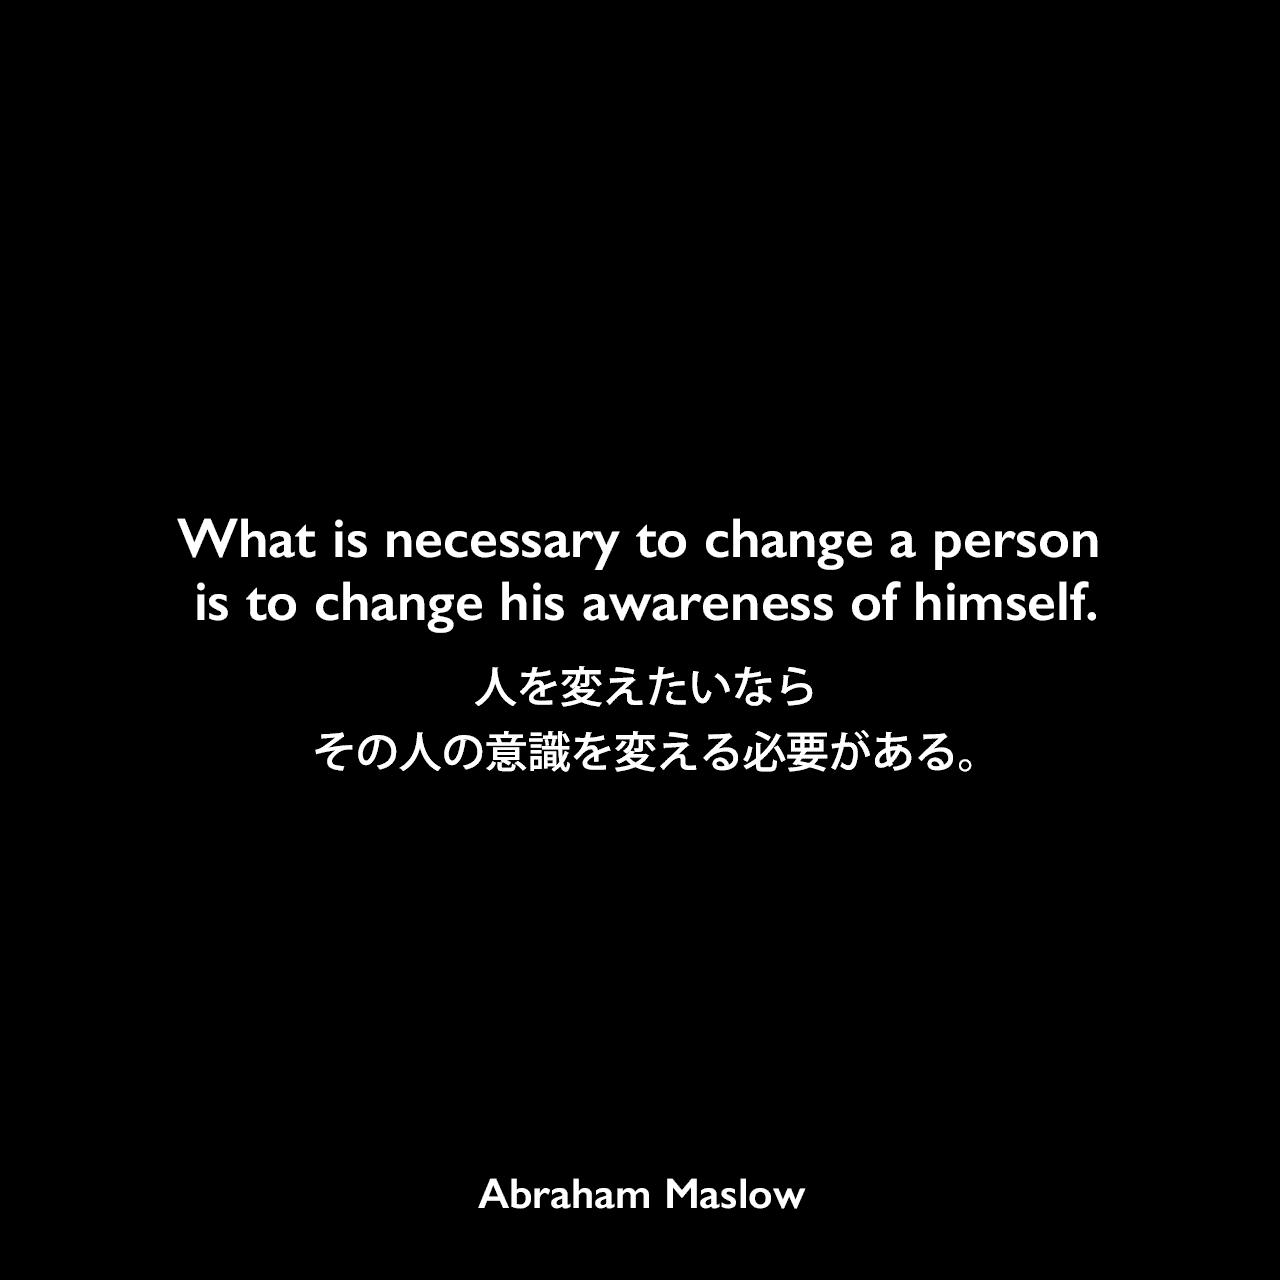 What is necessary to change a person is to change his awareness of himself.人を変えたいならその人の意識を変える必要がある。Abraham Maslow